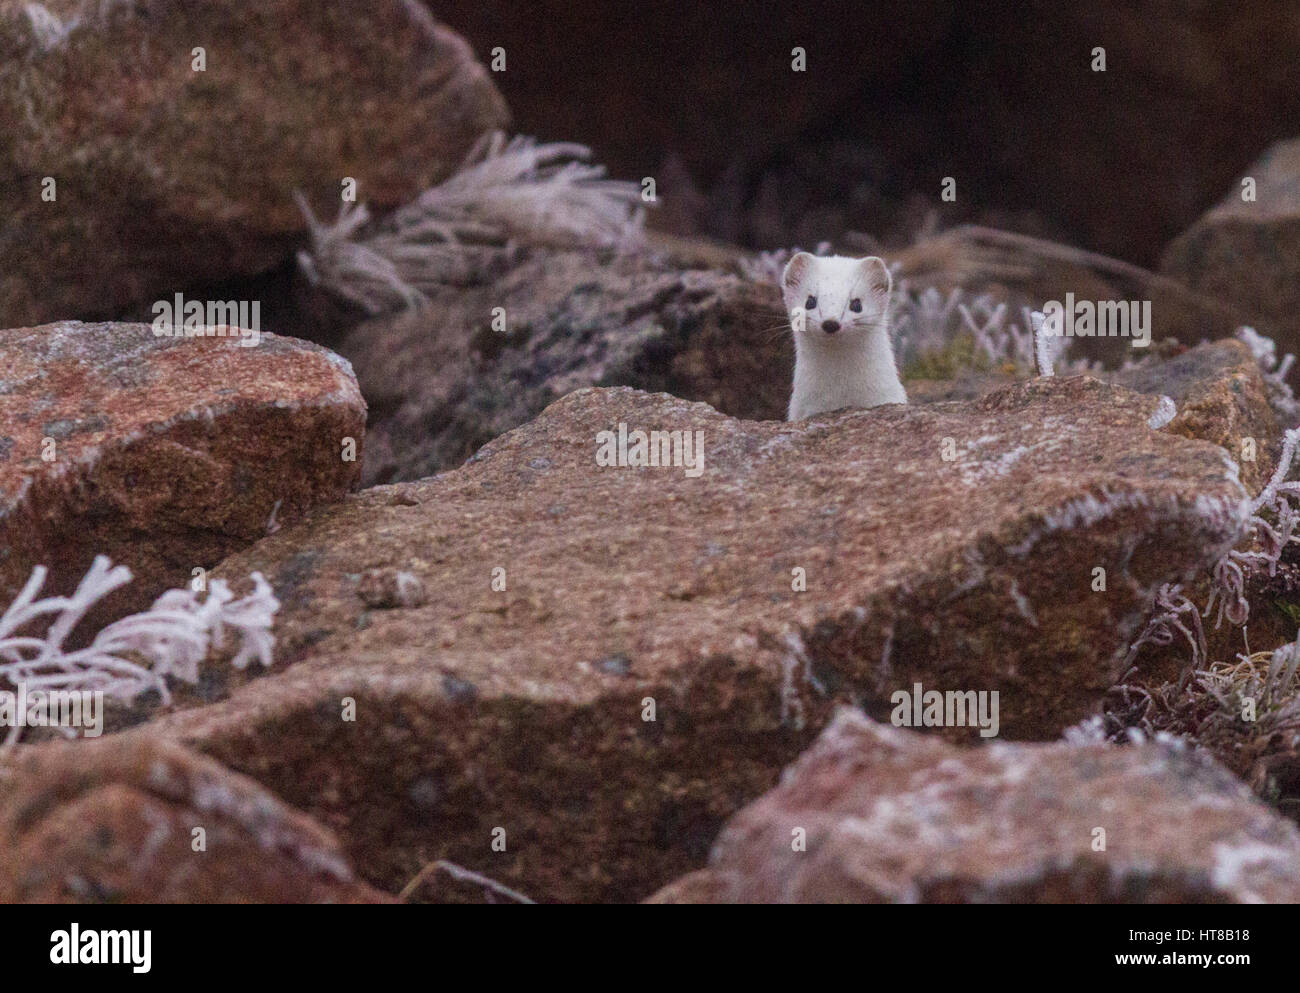 Ermine, Mustela erminea, having white winter fur, looking up among rocks looking in to the camera, cold weather - Stock Image